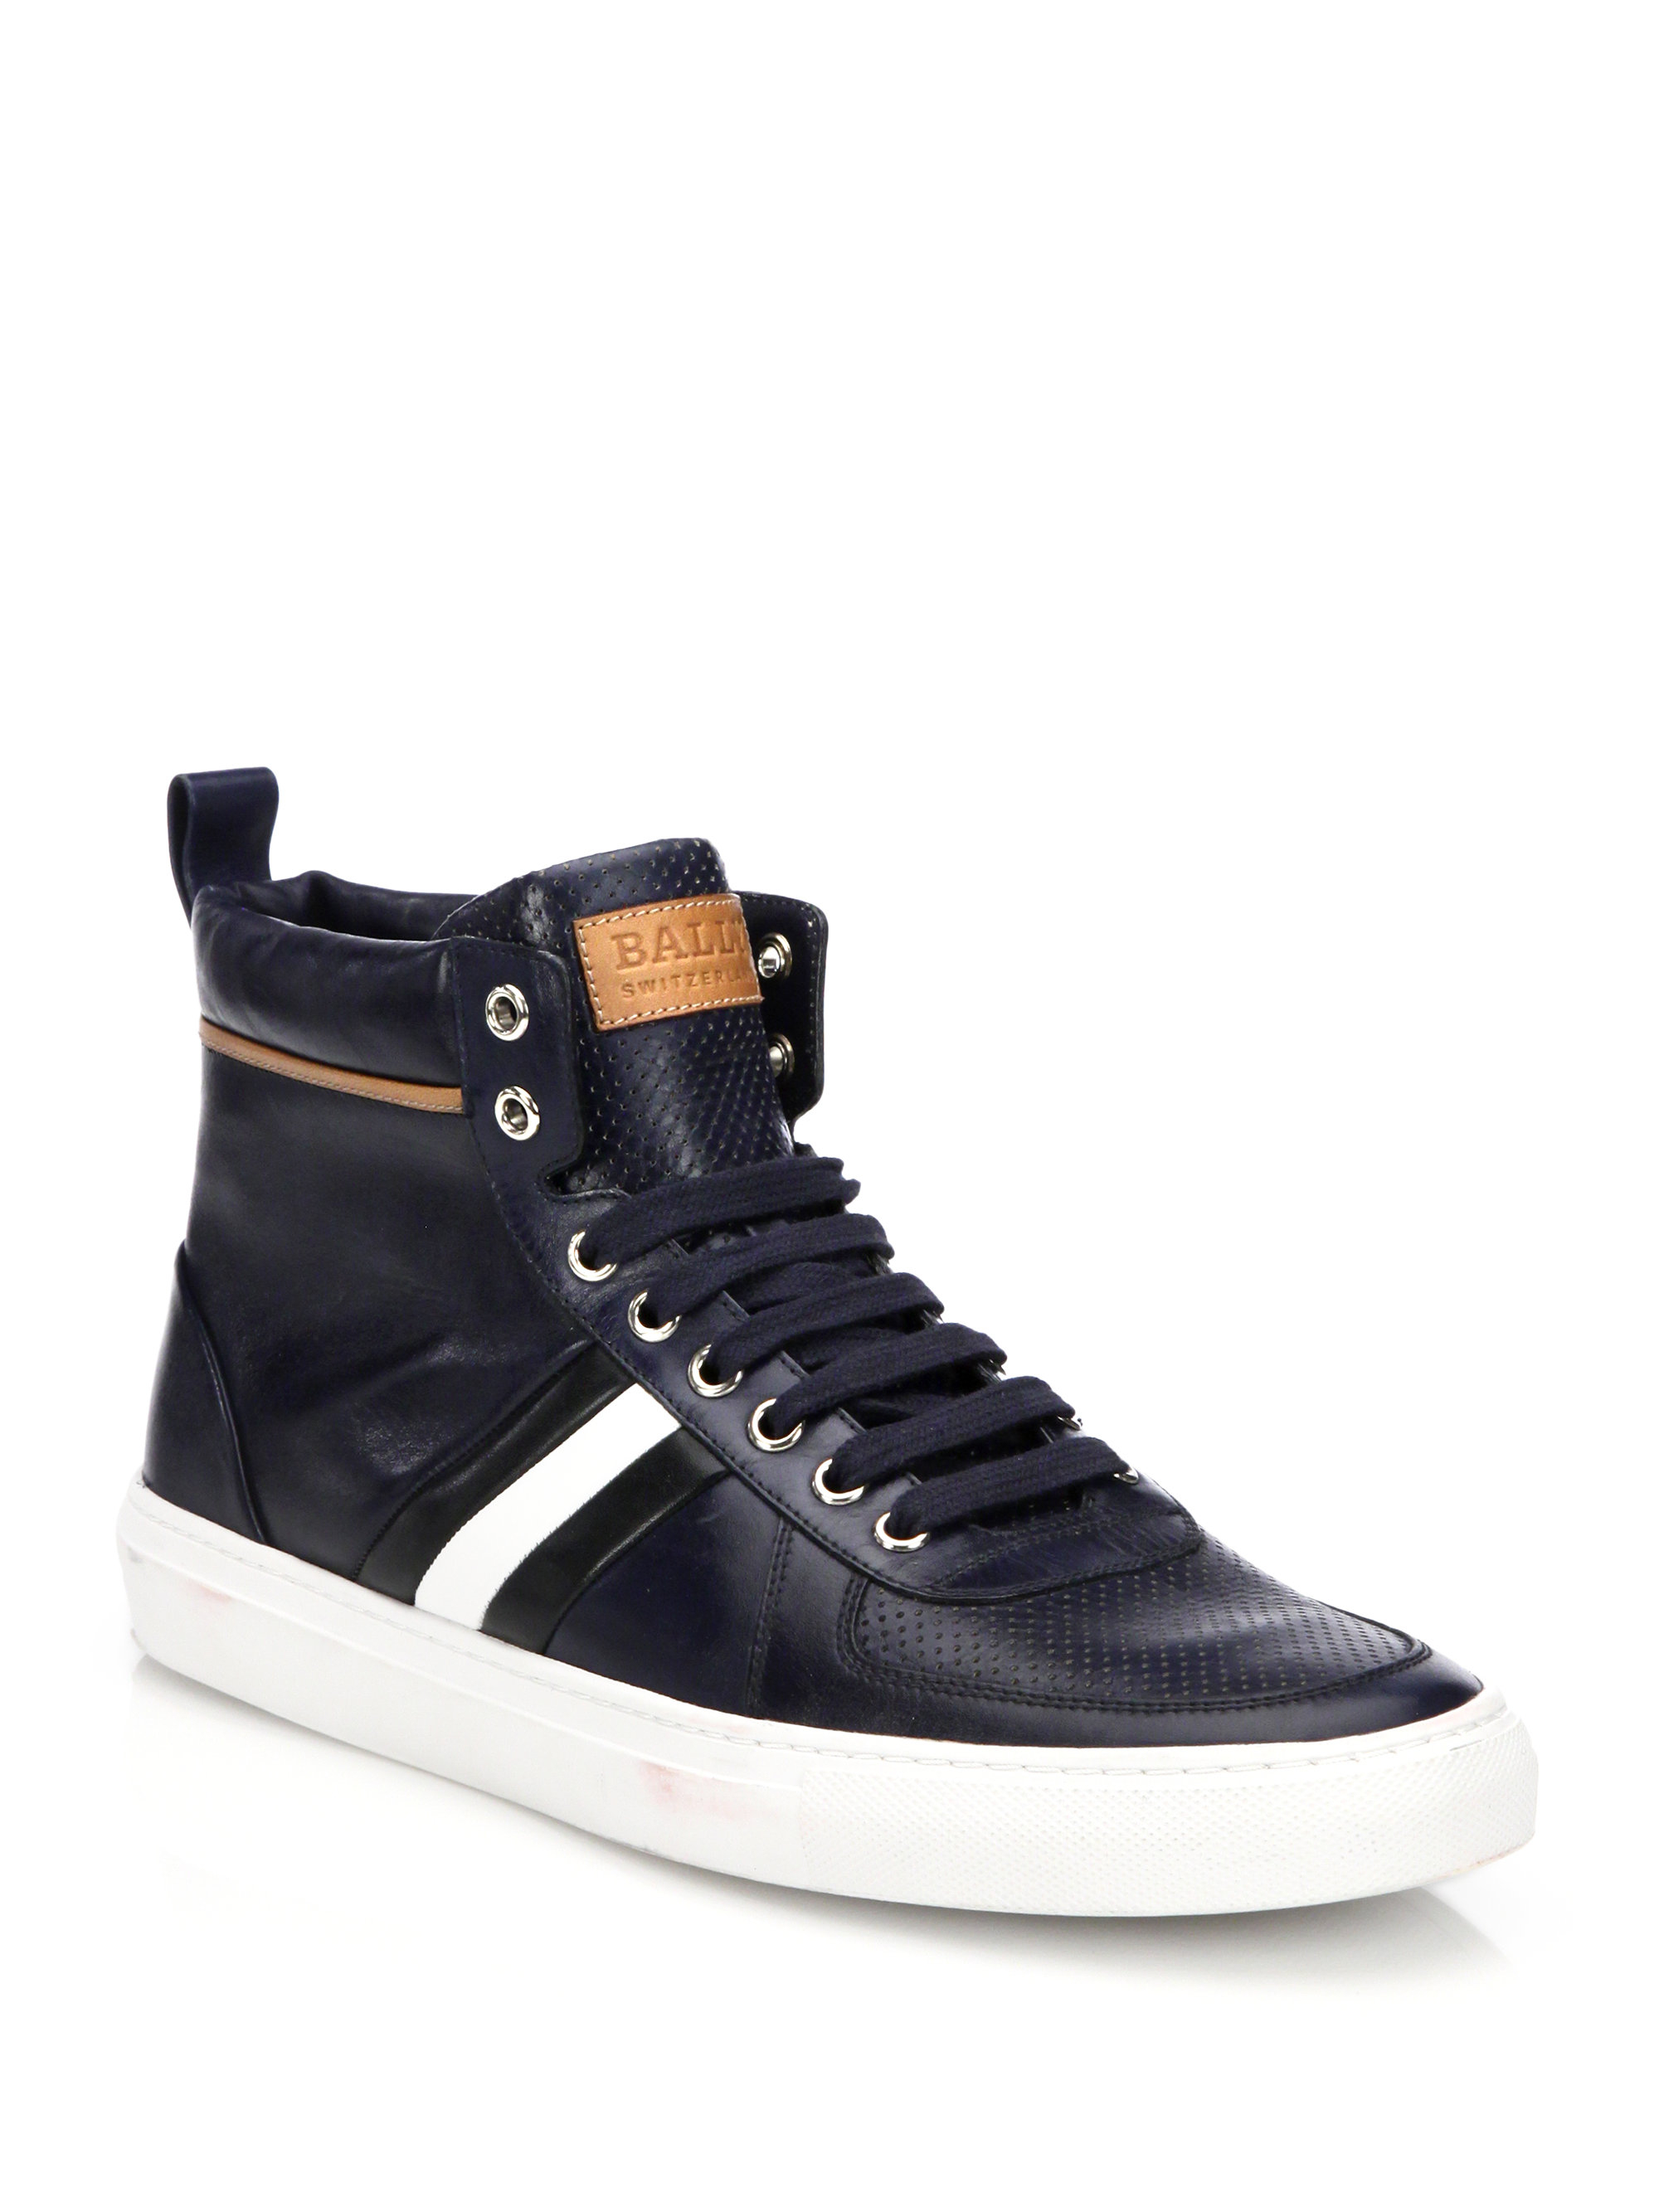 Blue High Tops Shoes Sale: Save Up to 60% Off! Shop missionpan.gq's huge selection of Blue High Tops Shoes - Over styles available. FREE Shipping & Exchanges, and a % price guarantee!